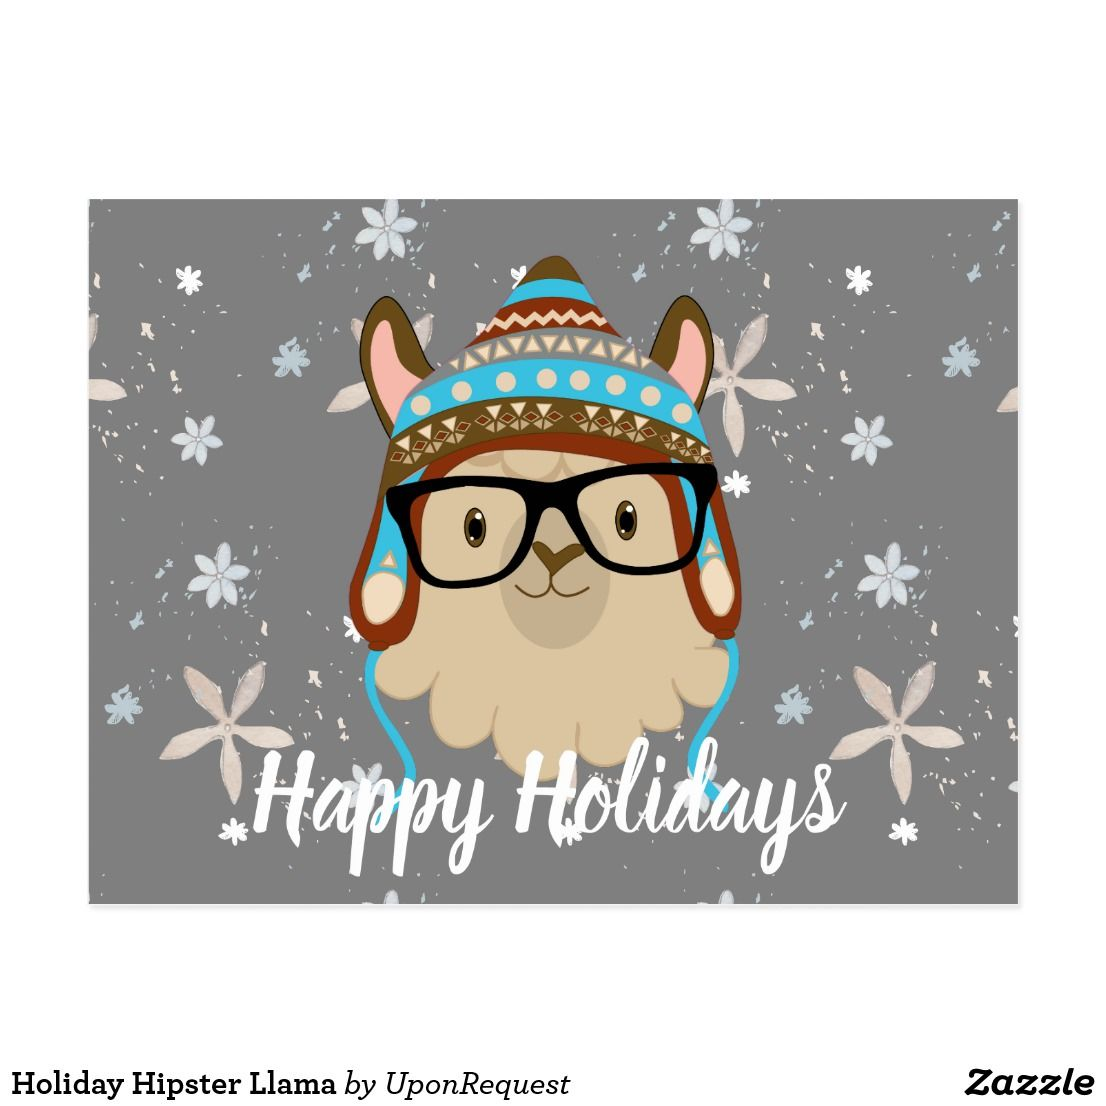 Holiday Hipster